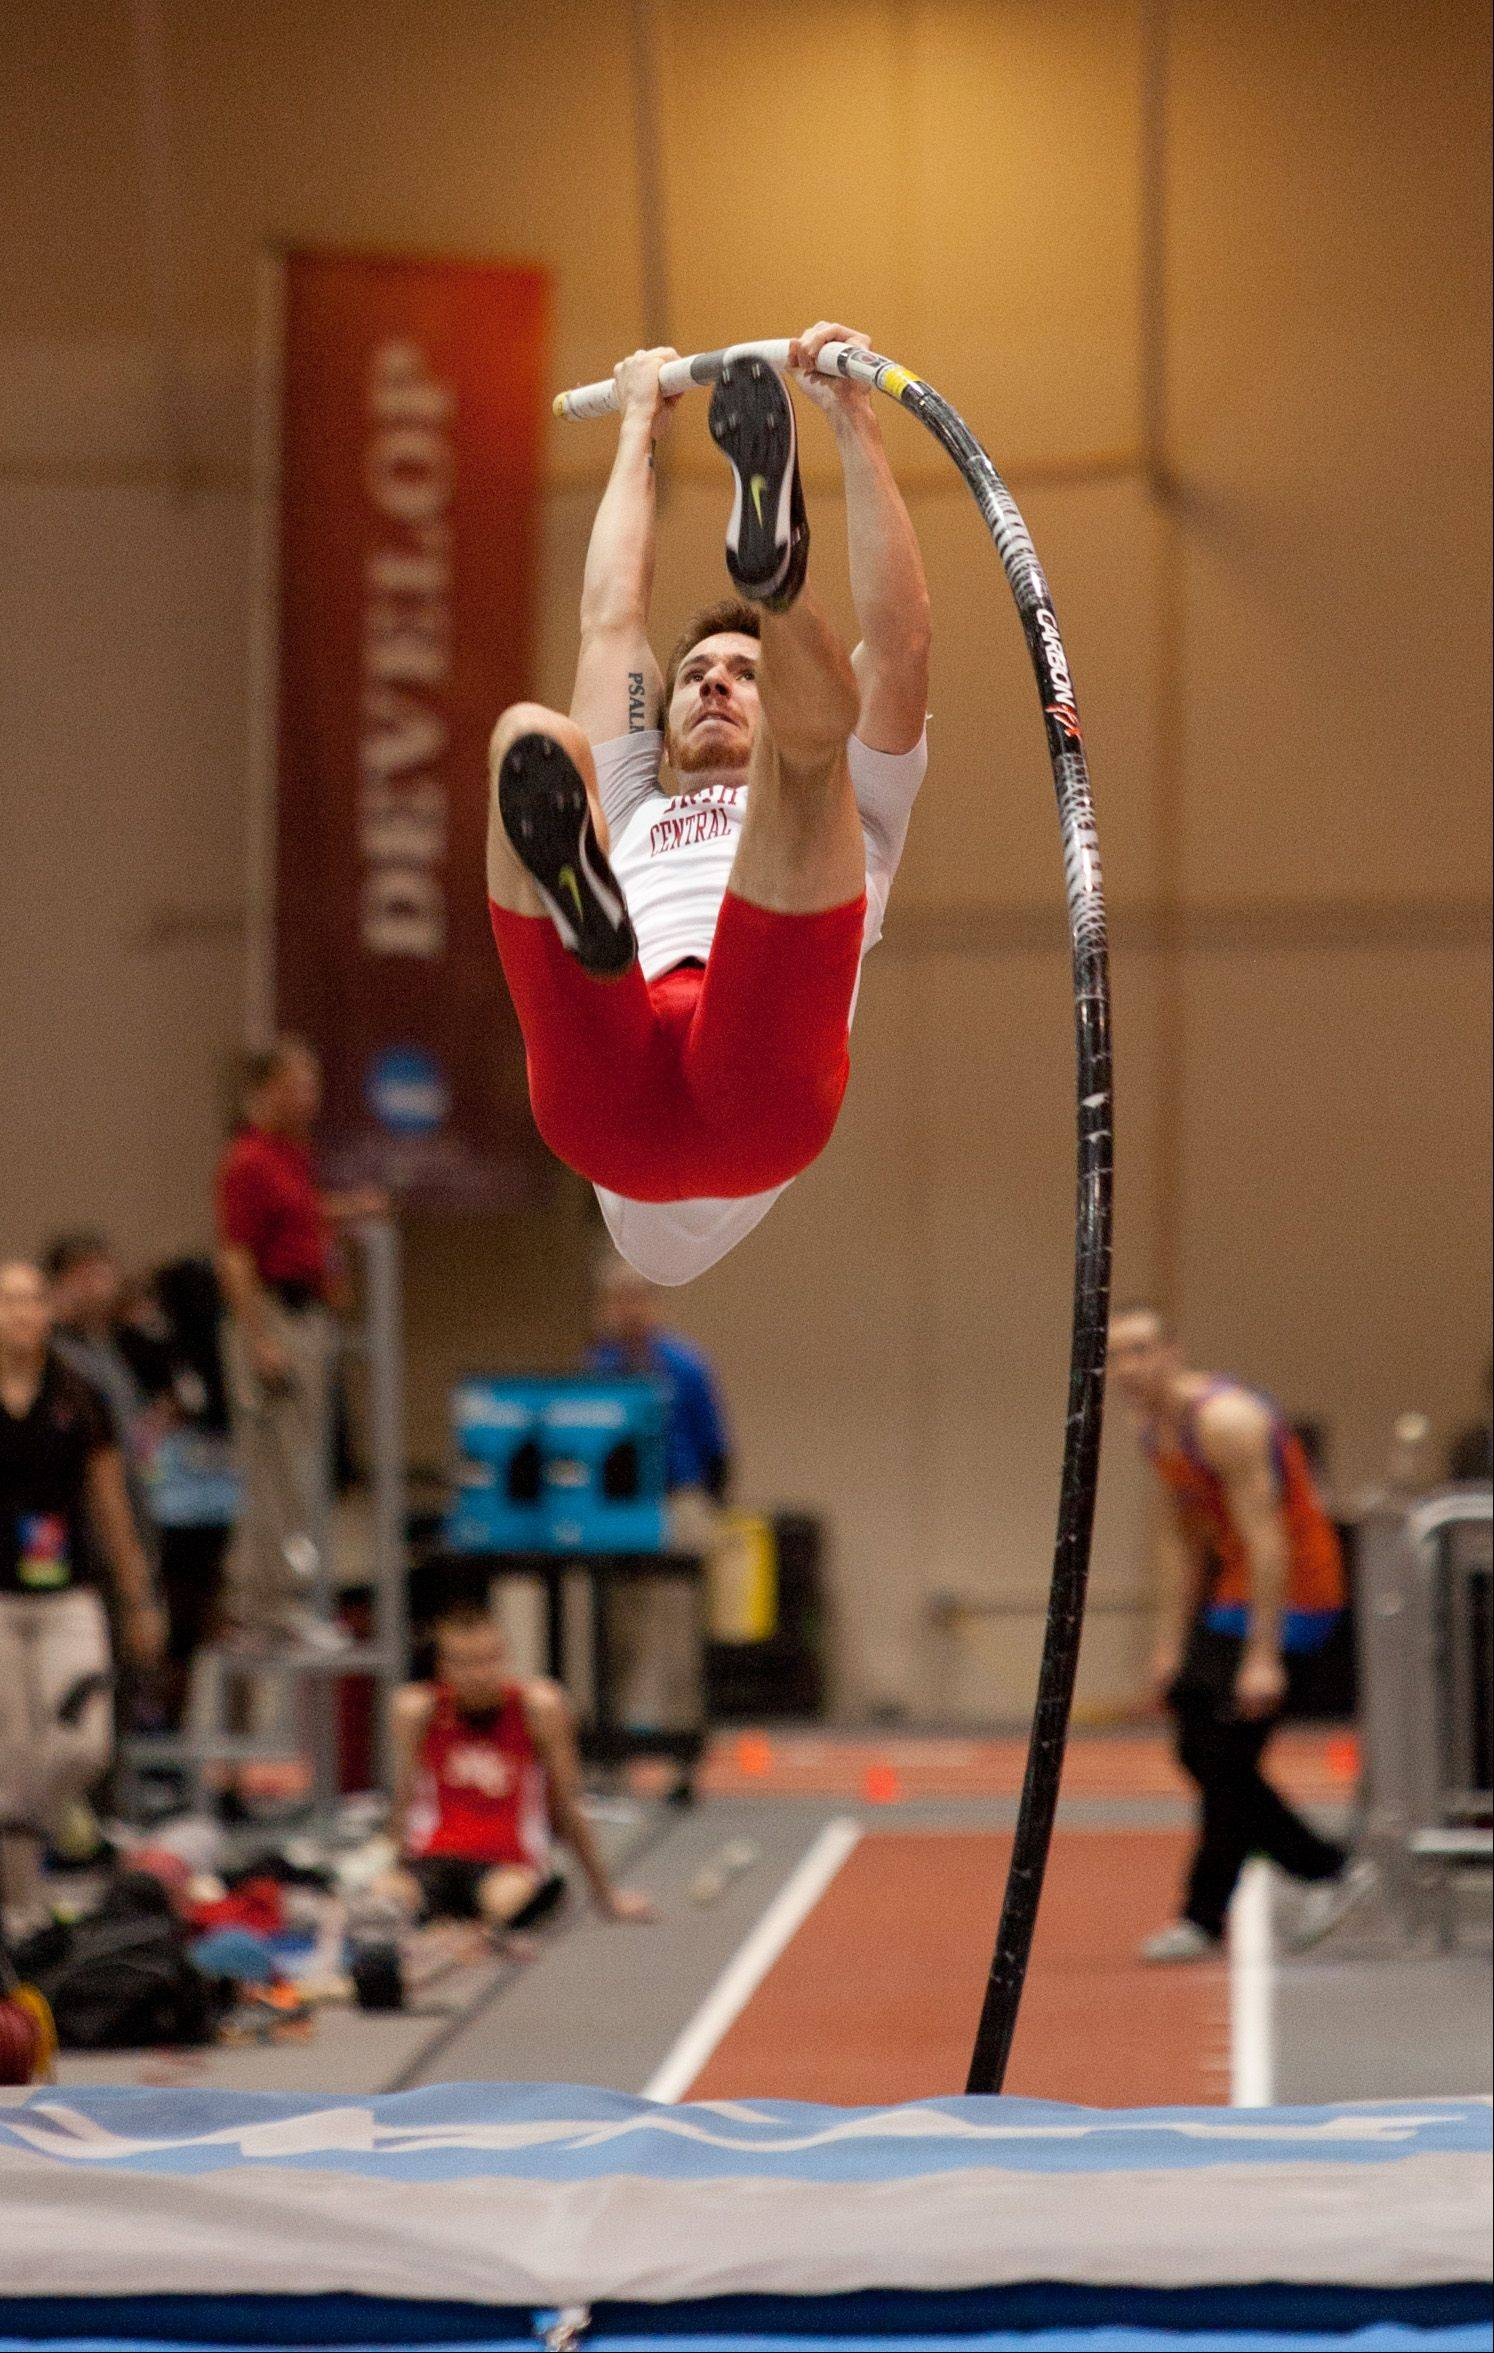 Daniel White/dwhite@dailyherald.comNorth Central College's Josh Winder eyes the bar during the first day of NCAA Division III National Indoor Track and Field Championships at North Central College in Naperville. Winder, a former national champion pole vaulter, finished third.